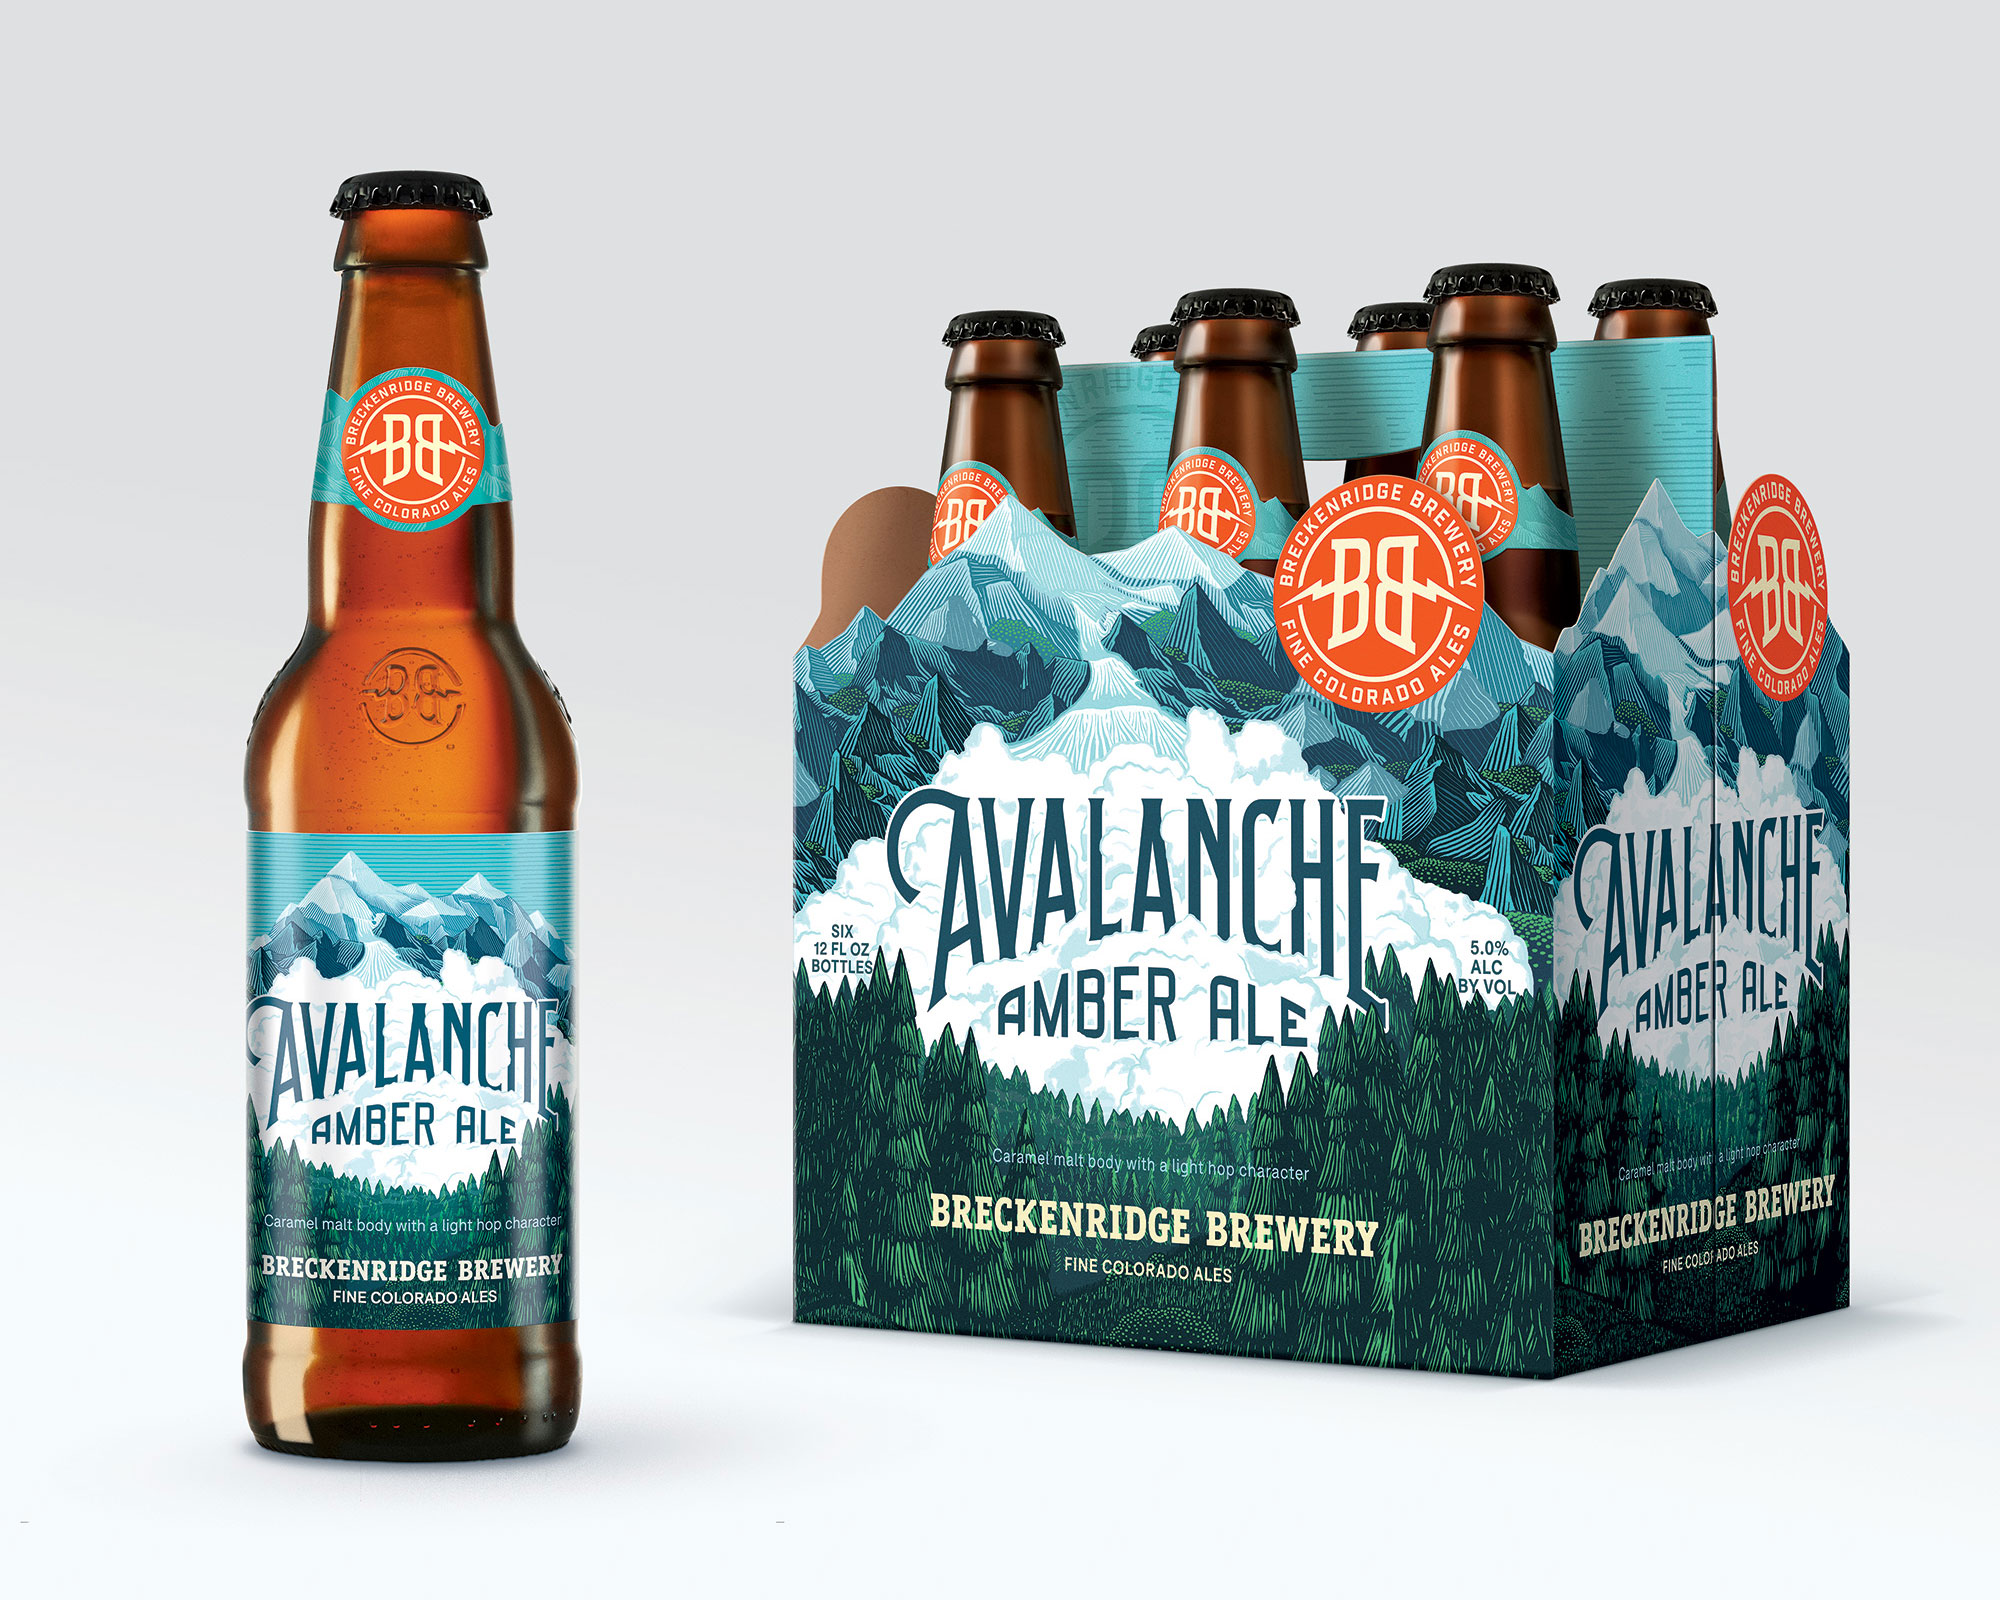 Breckenridge Brewery Redesign